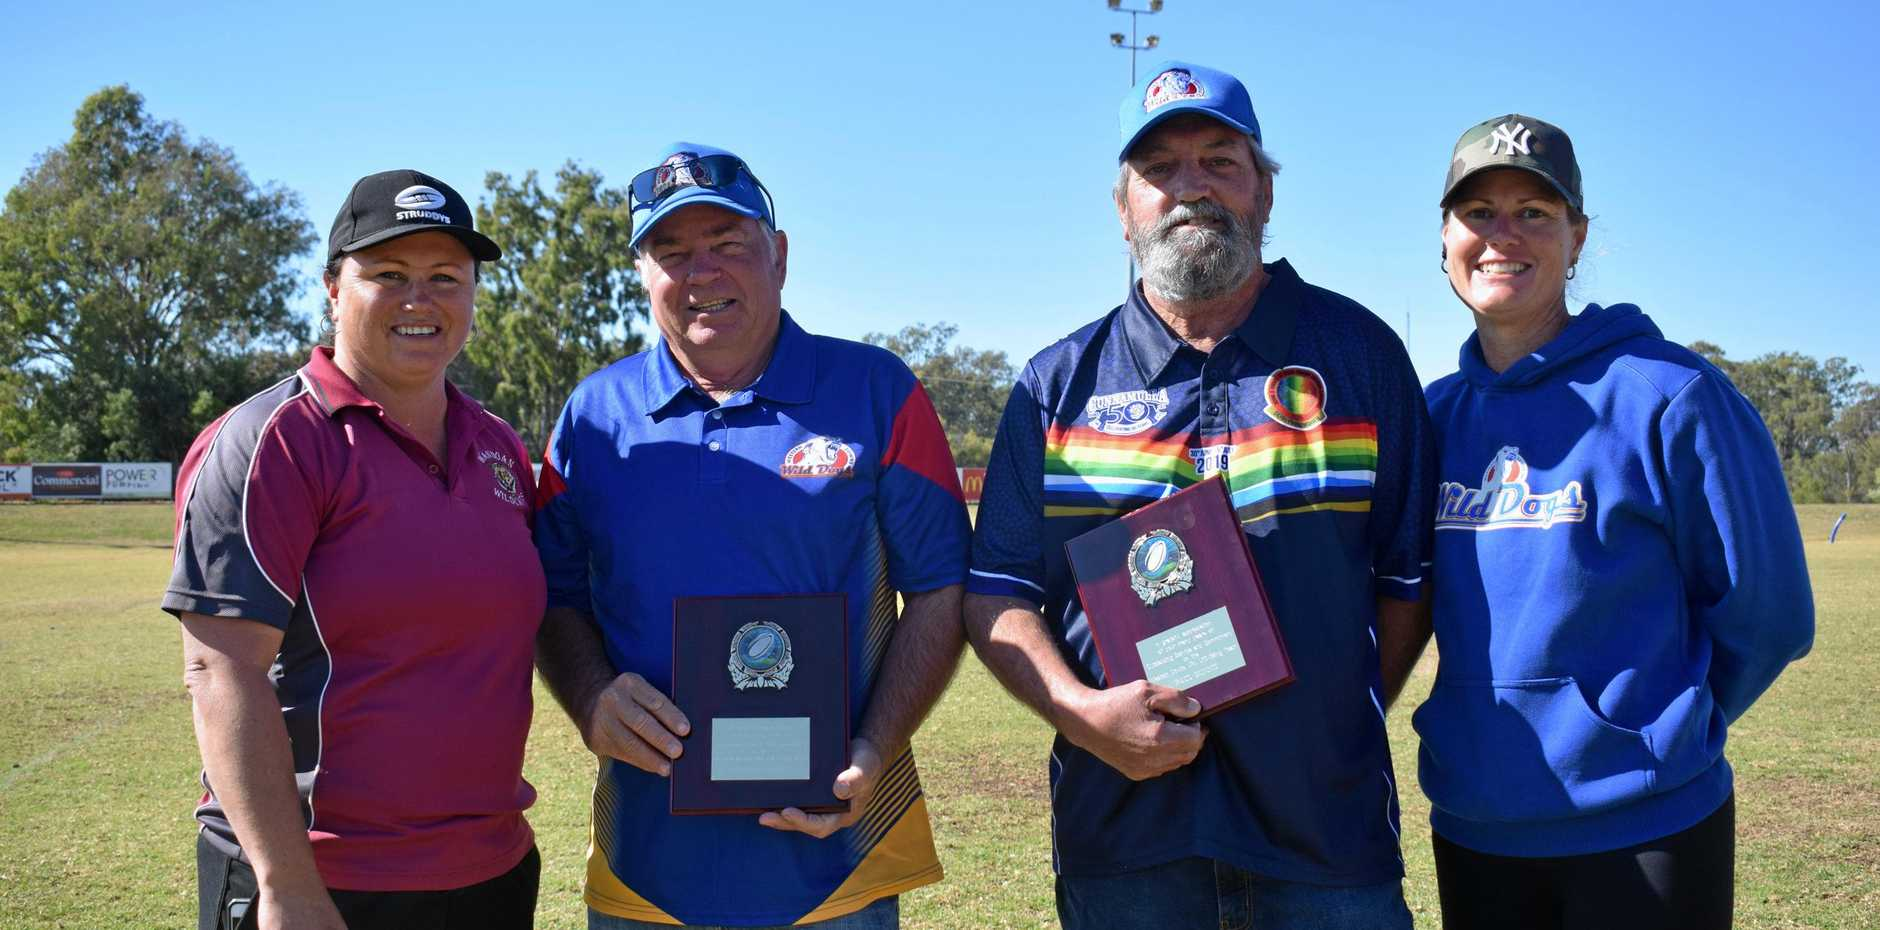 COACHING LEGENDS: Western Downs Junior Rugby League secretary Teena Doherty, coaches Kelson Gaske and Paul Gunnis and president Tamara Pitt at the junior rugby league carnival at Bulldog Park on Saturday.